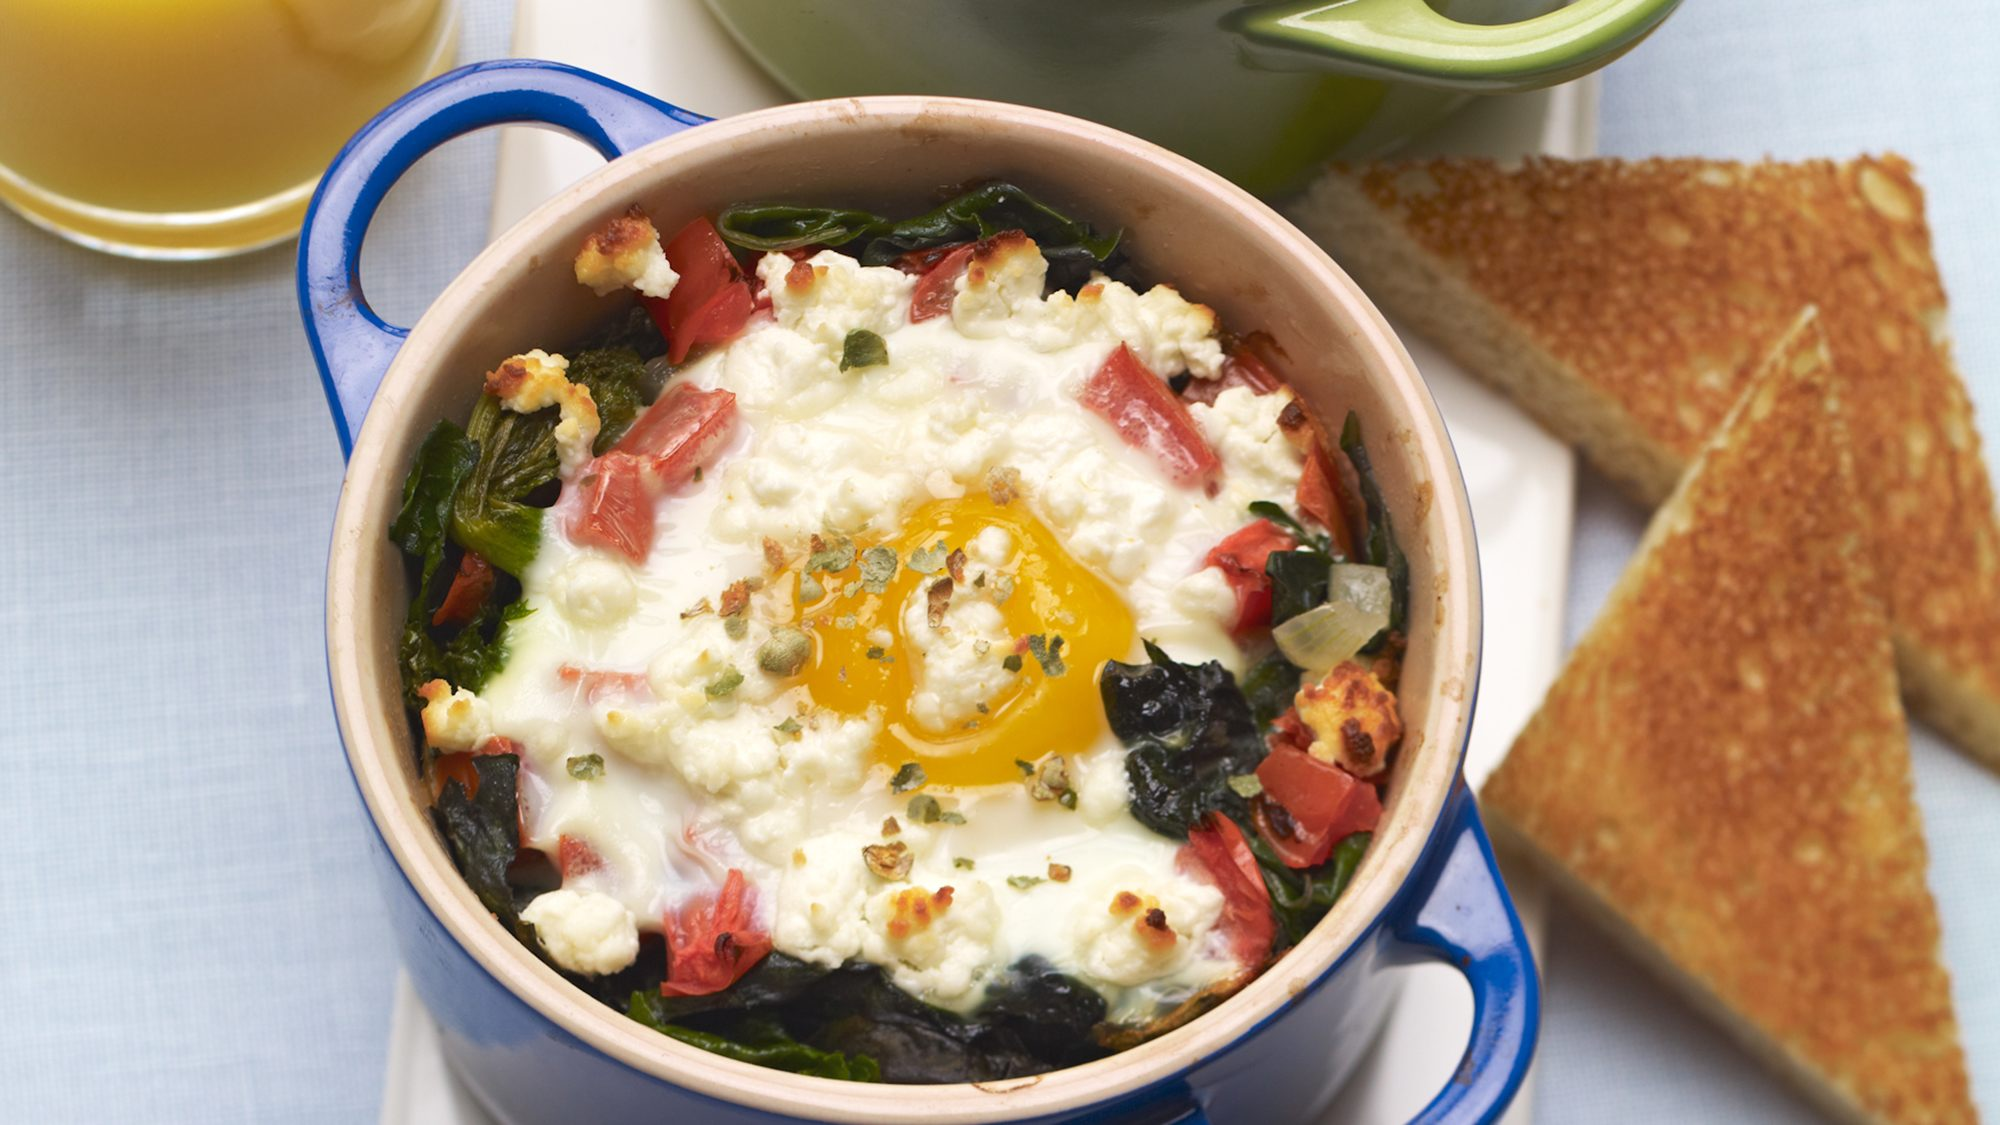 baked-eggs-with-goat-cheese-and-peppercorns.jpg